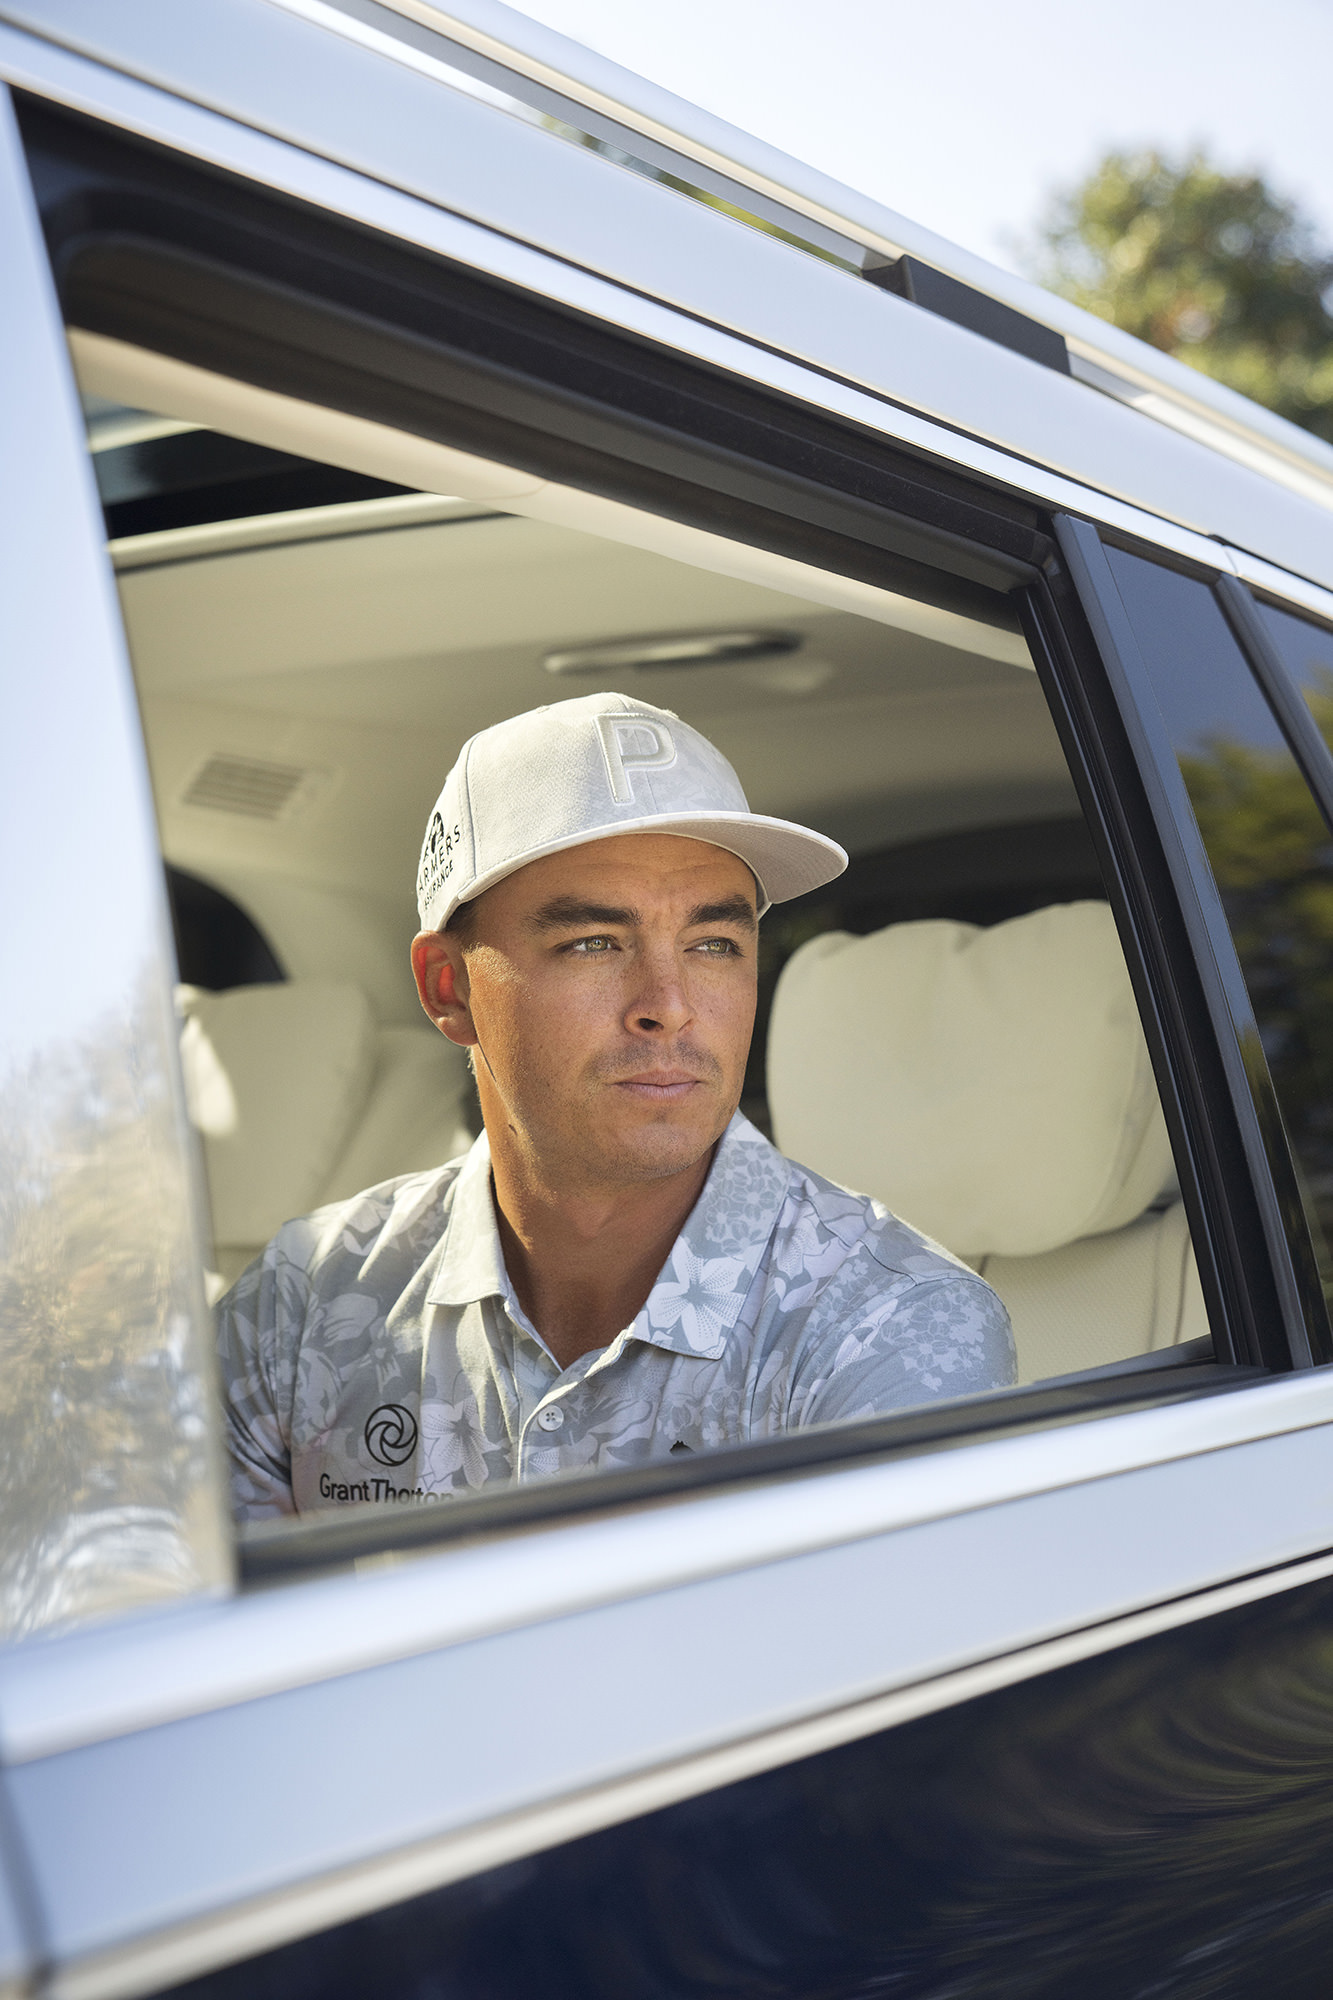 Rickie Fowler in Mercedes-Benz Maybach GLS SUV